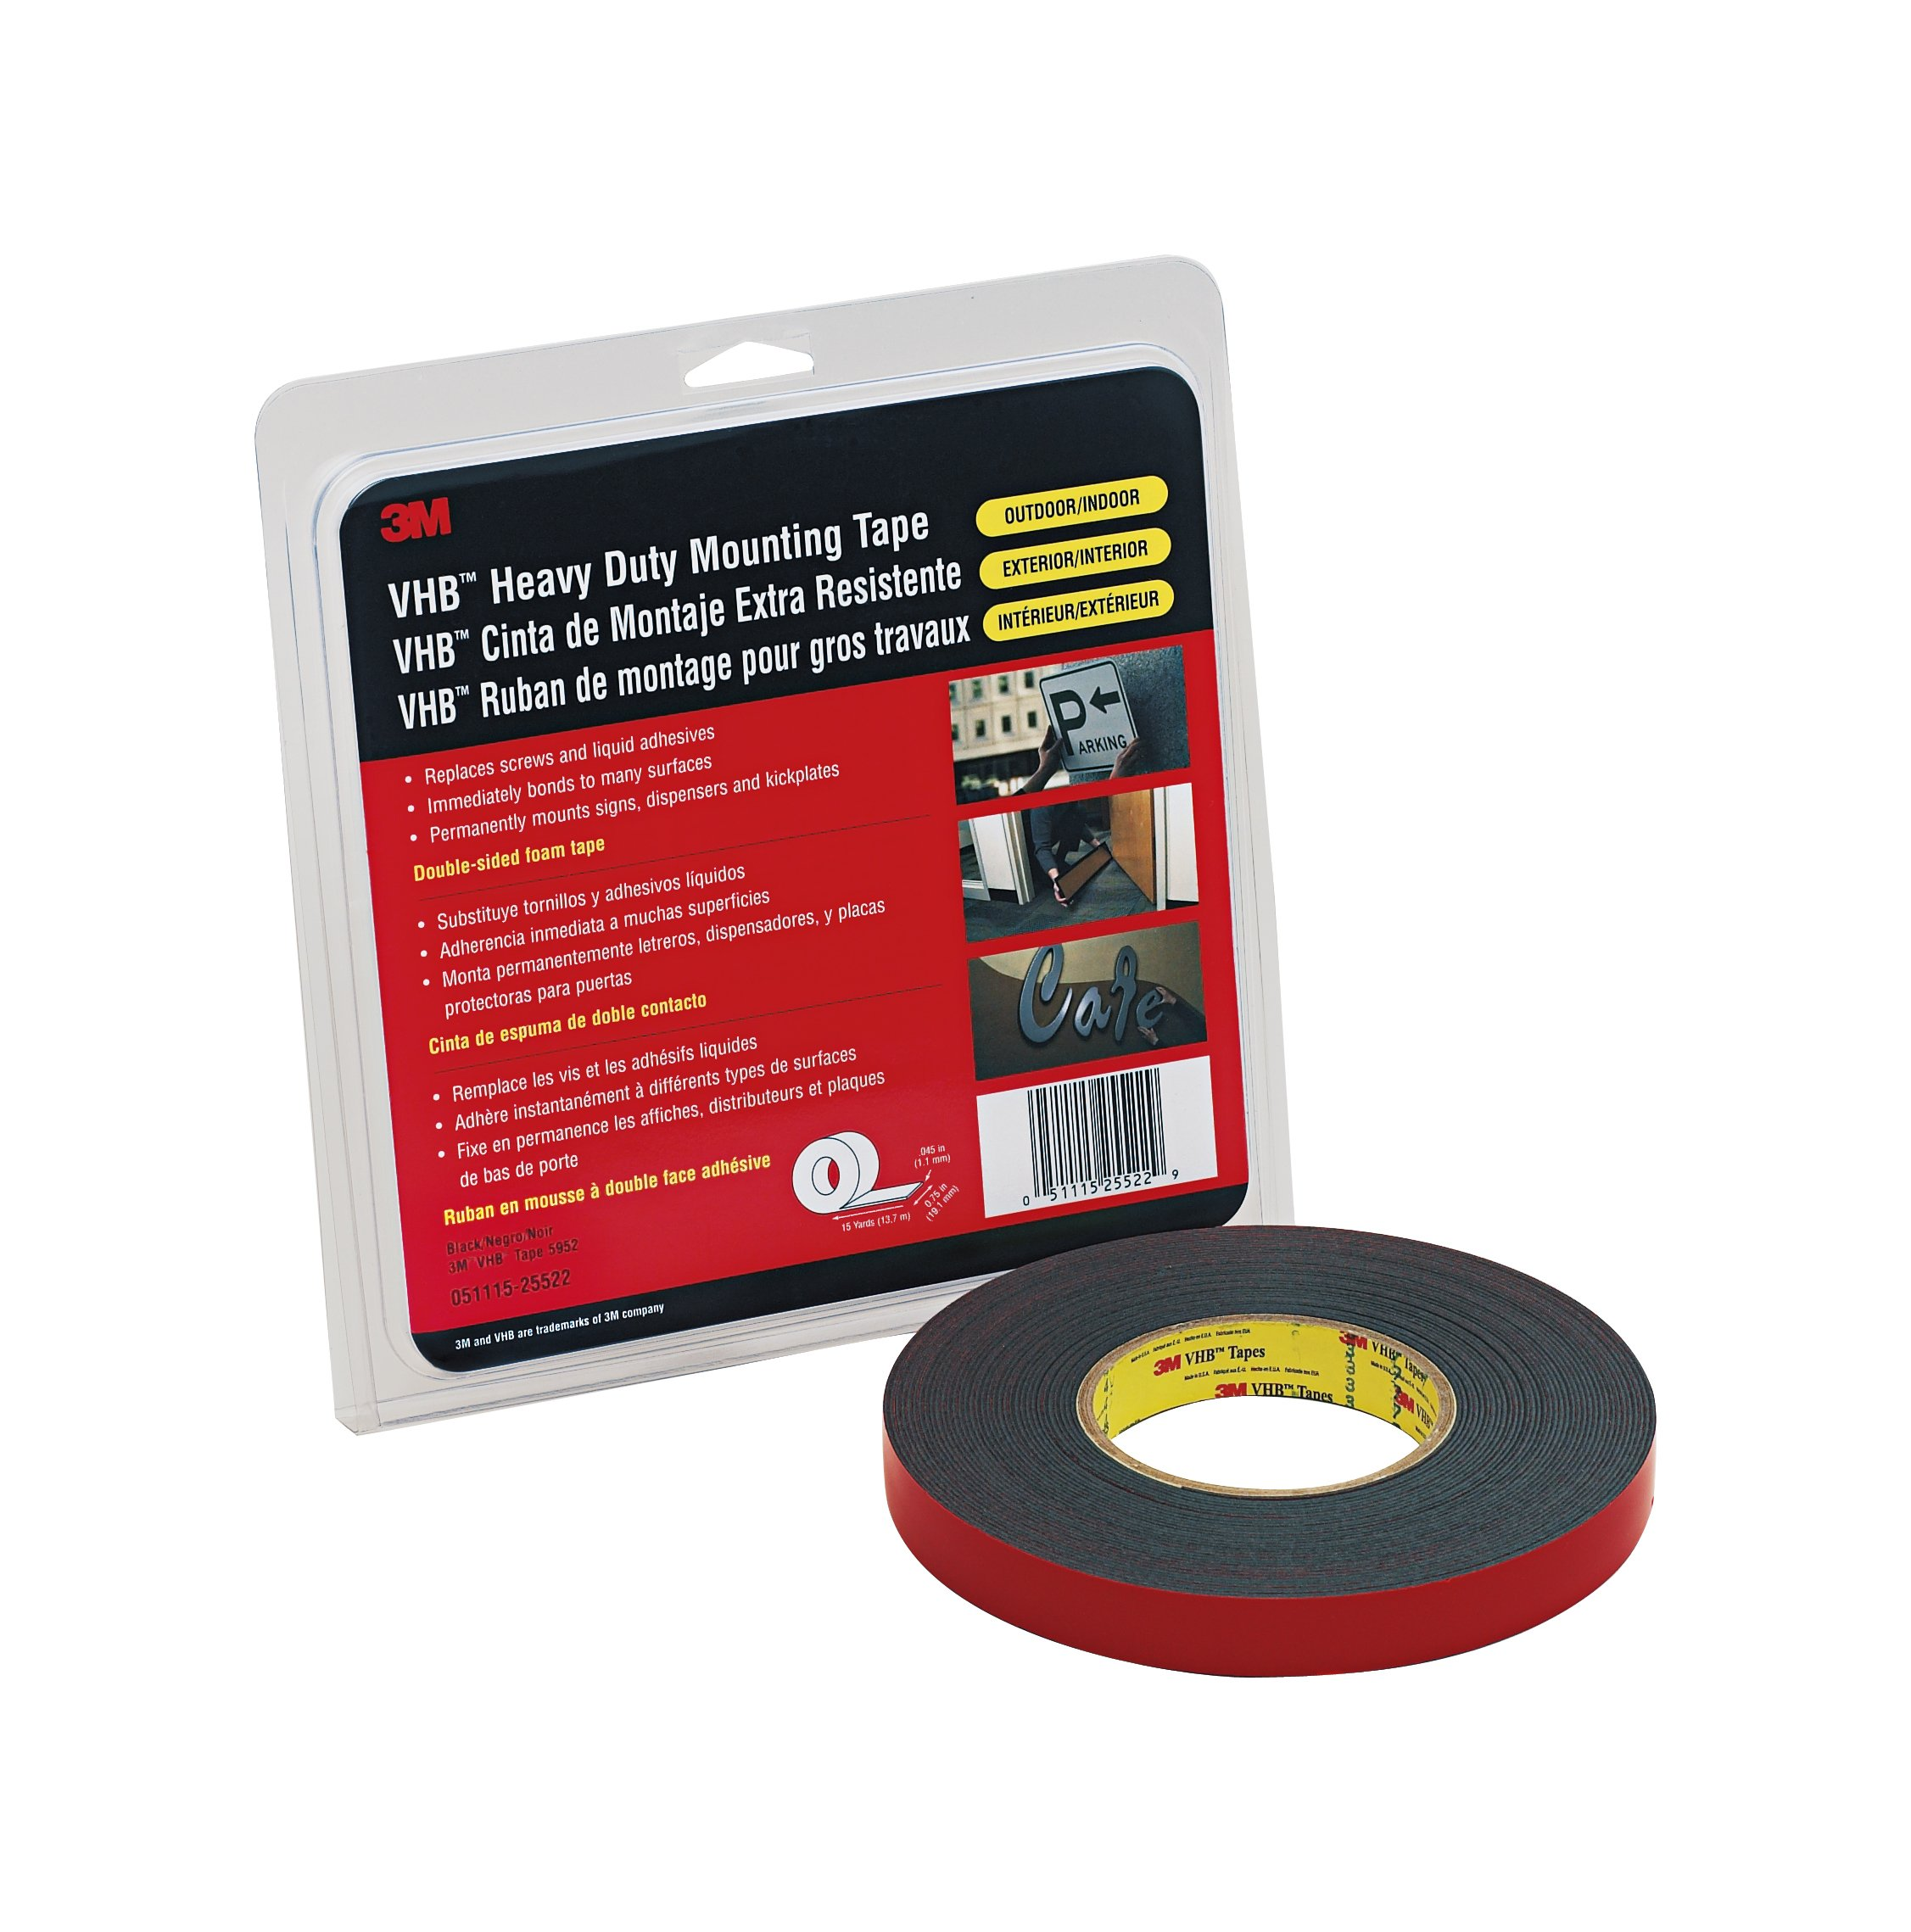 3M VHB Tape 5952 Black Small Pack, 1 in x 36 yd 45.0 mil (Case of 2)